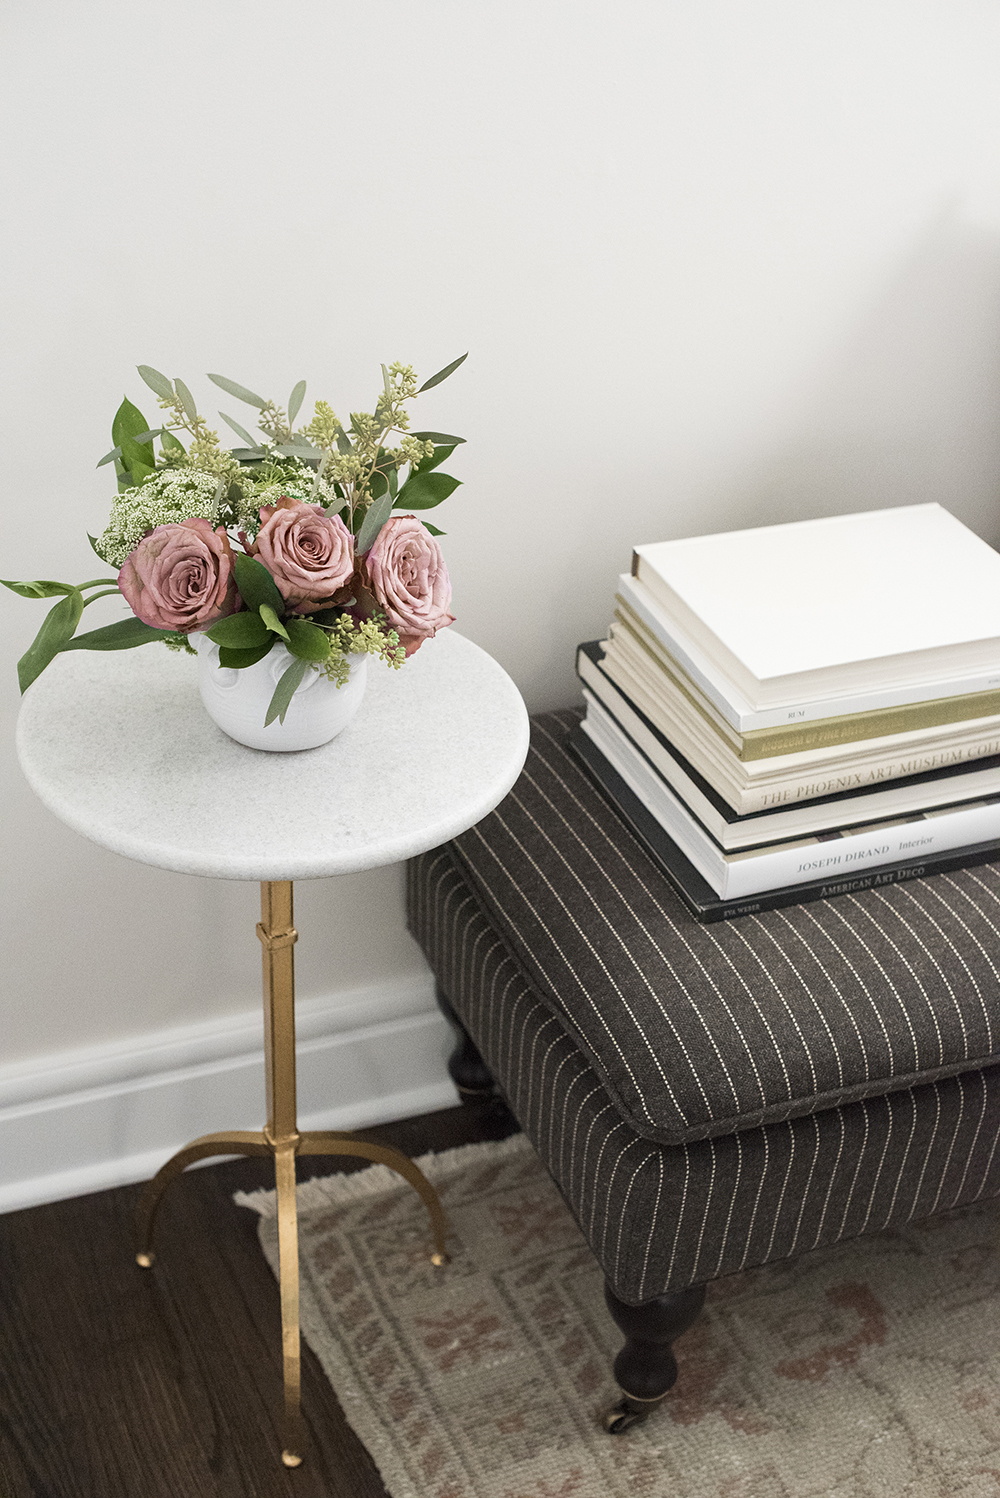 Best of Etsy : Side Tables - roomfortuesday.com